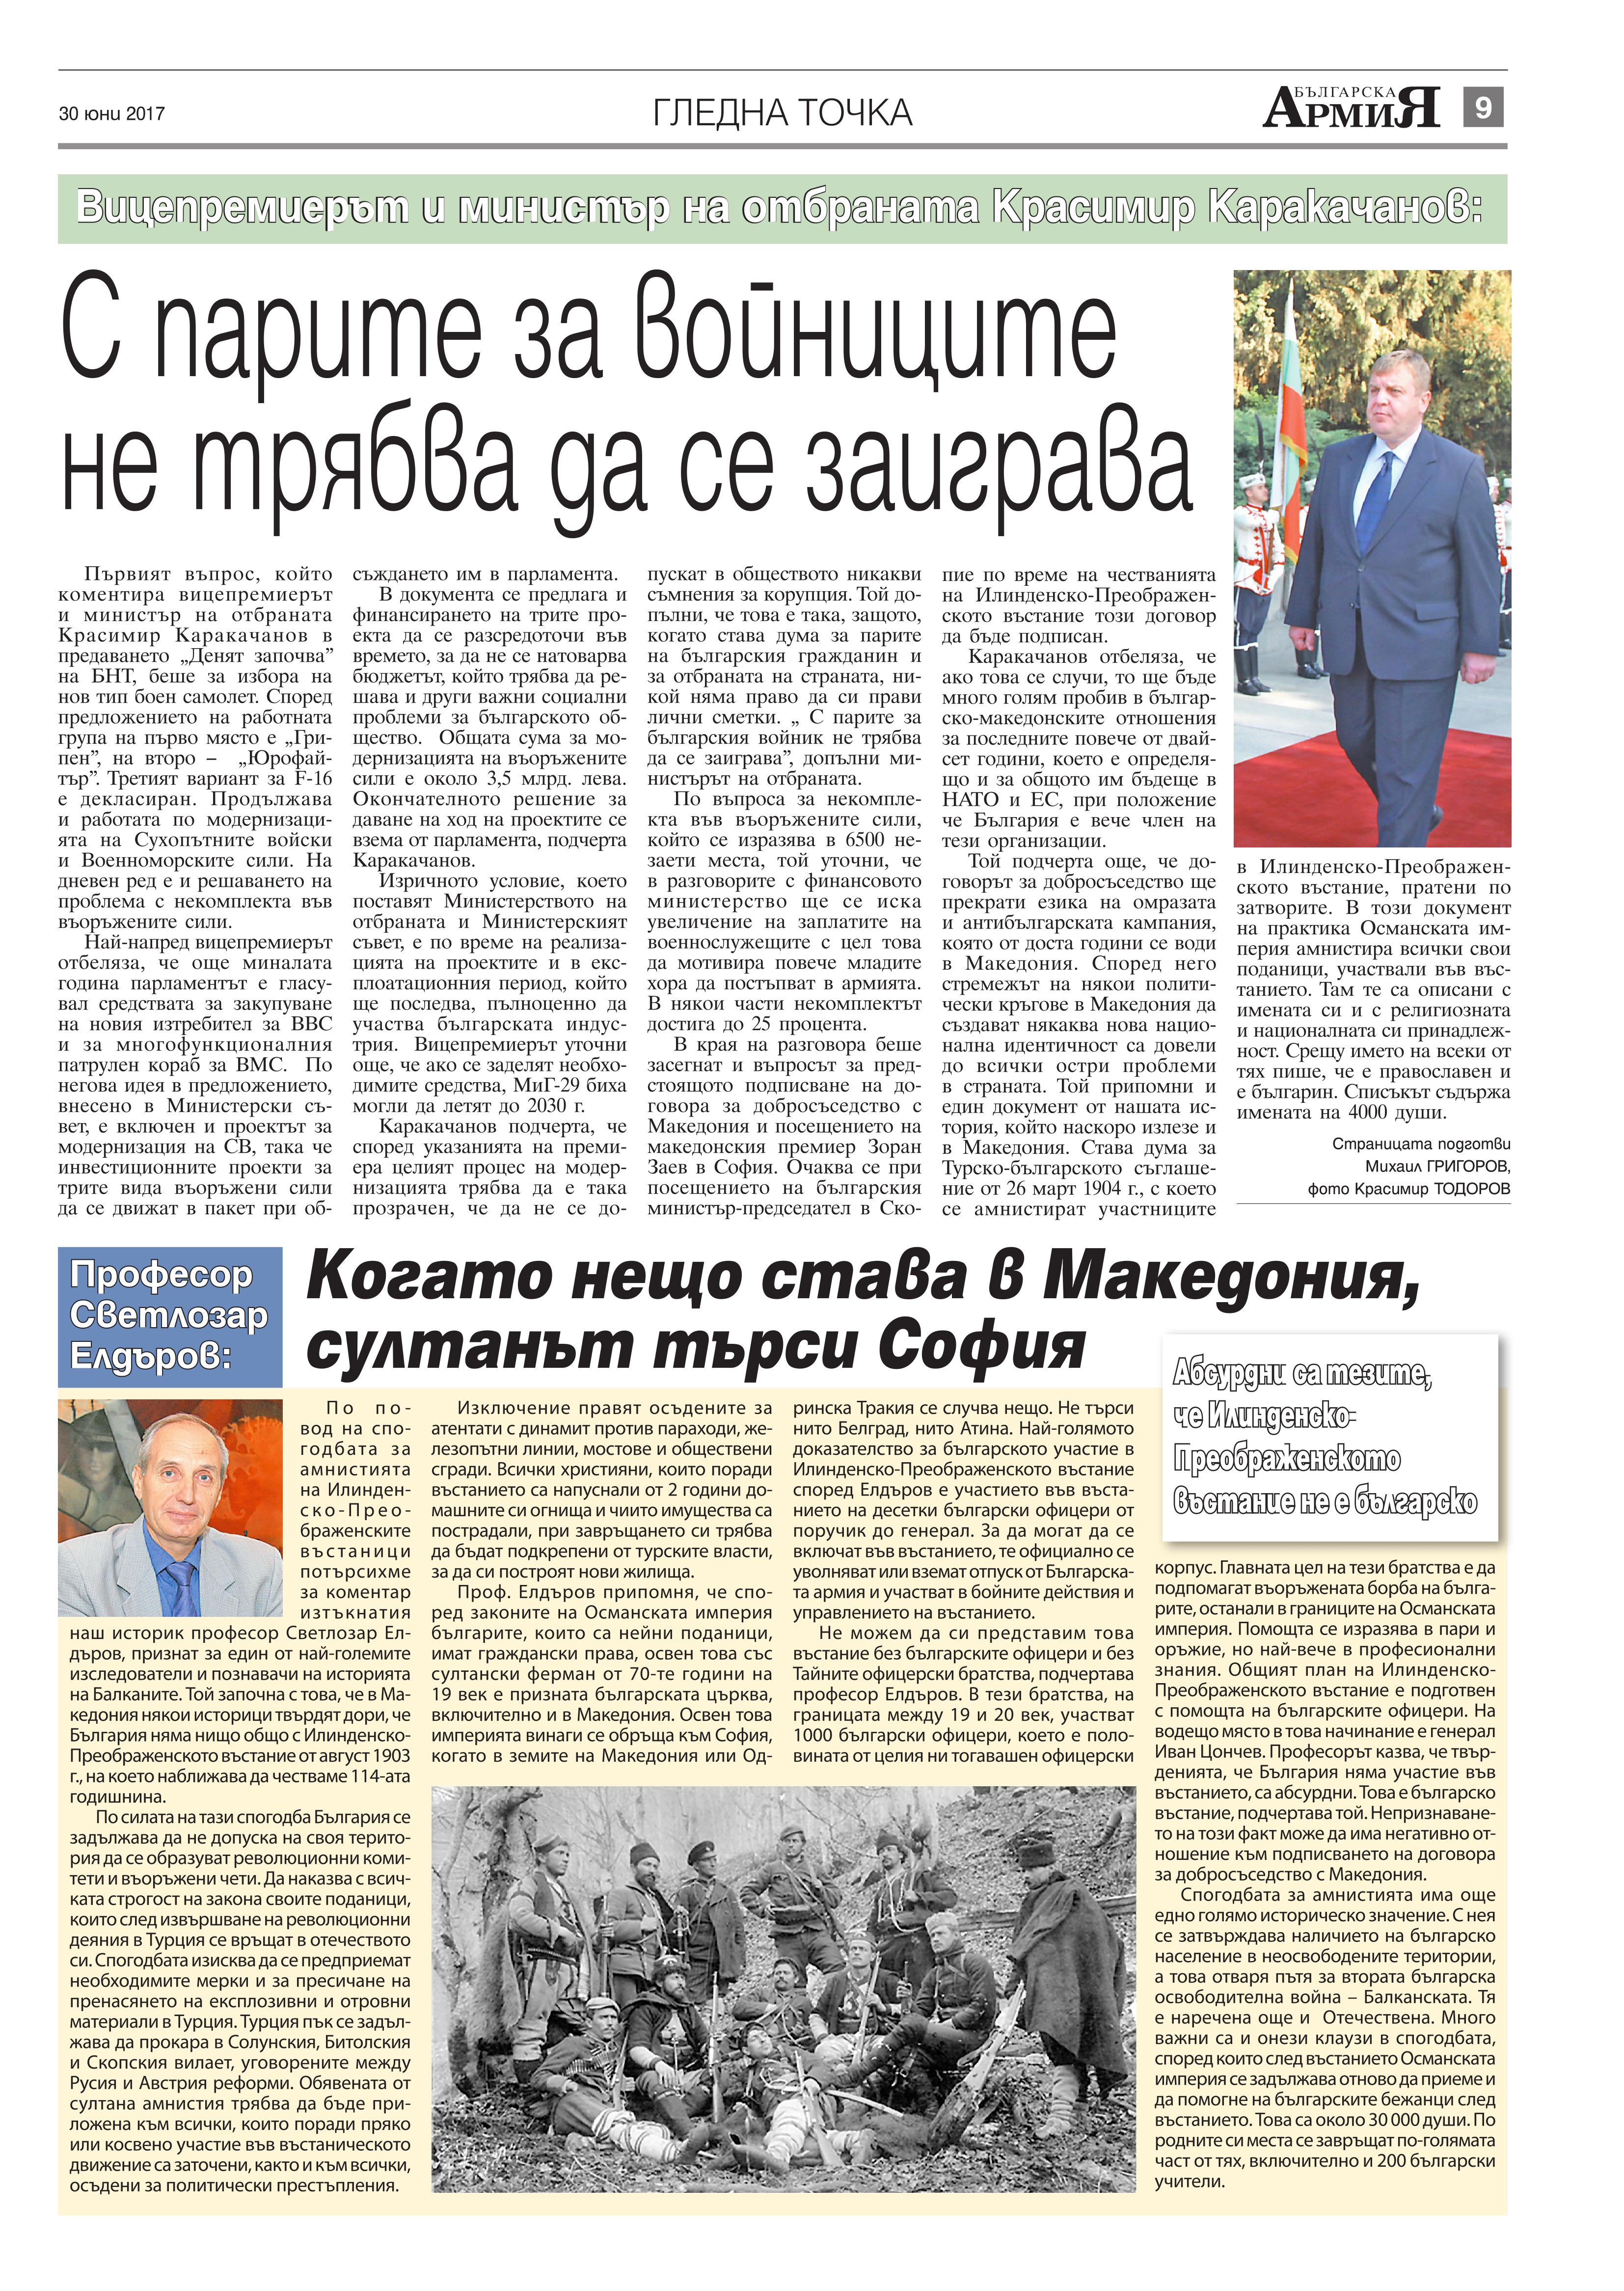 https://www.armymedia.bg/wp-content/uploads/2015/06/09.page1_-23.jpg